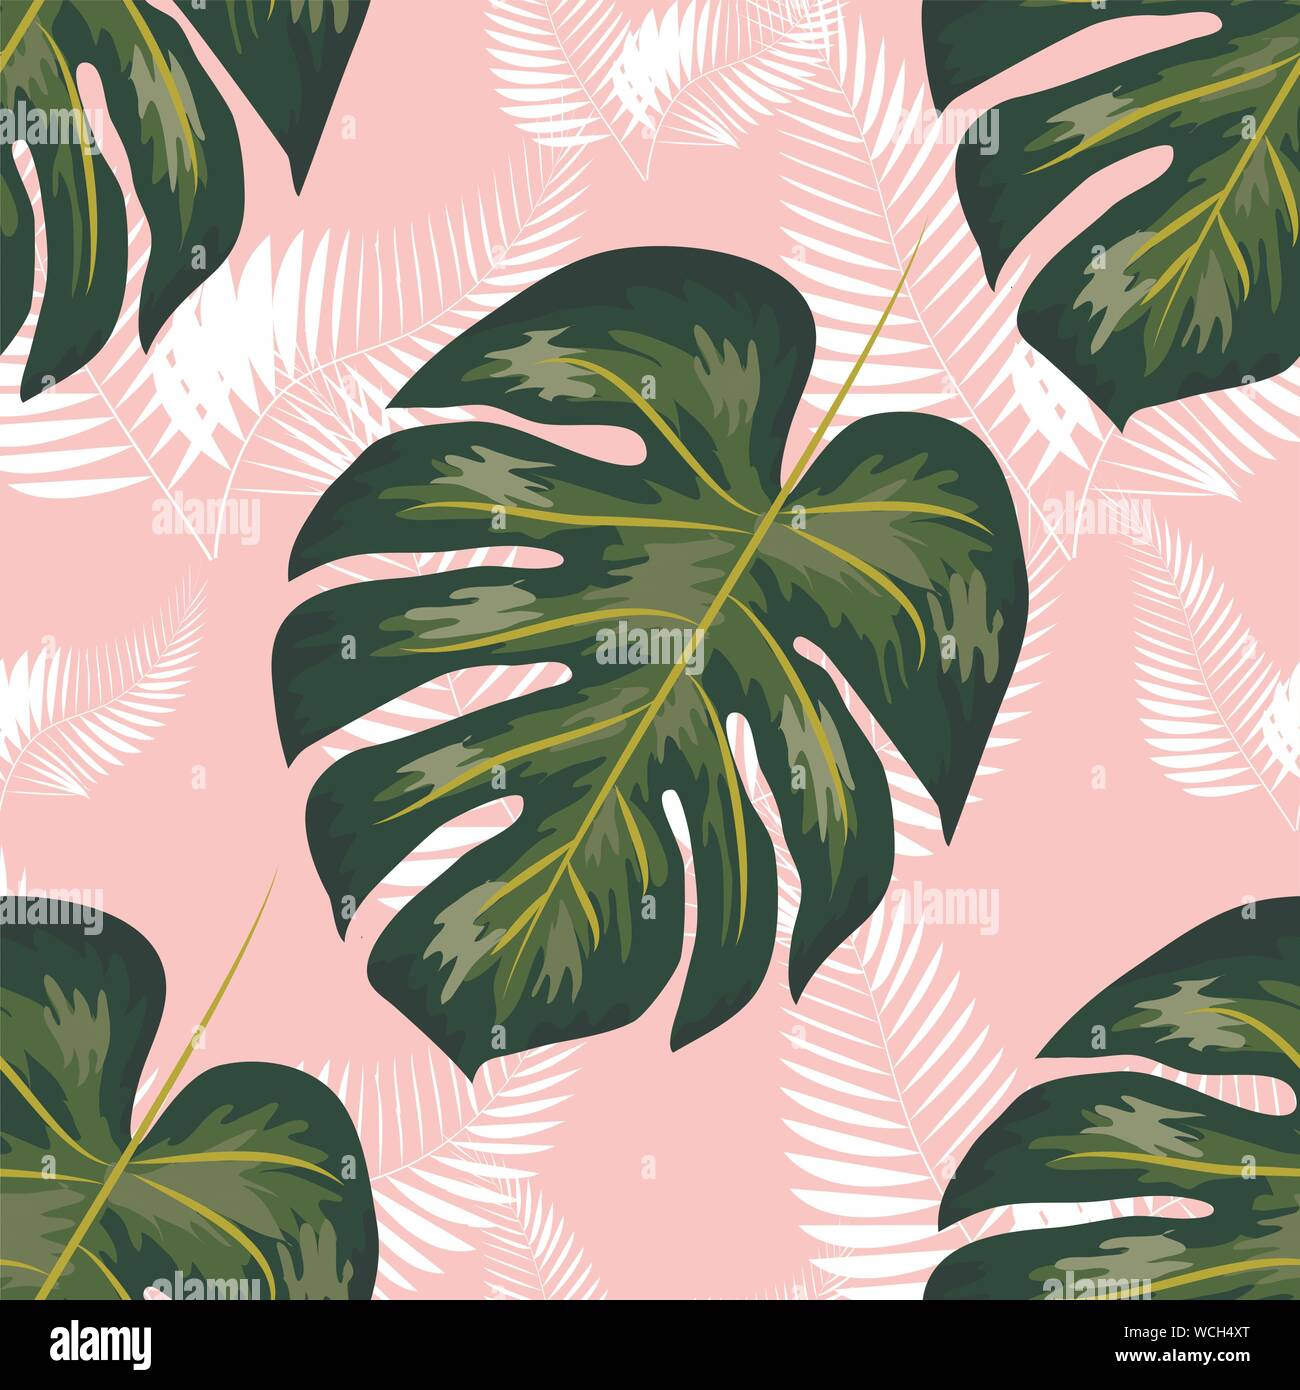 Tropical Exotic Floral Green And Red Monstera Palm Leaves Seamless Pattern Exotic Jungle Wallpaper Stock Vector Image Art Alamy Alstromeria asters bouquets carnations chrysanthemum exotic blooms and foliages flowers and fillers gladiolas. https www alamy com tropical exotic floral green and red monstera palm leaves seamless pattern exotic jungle wallpaper image265908464 html